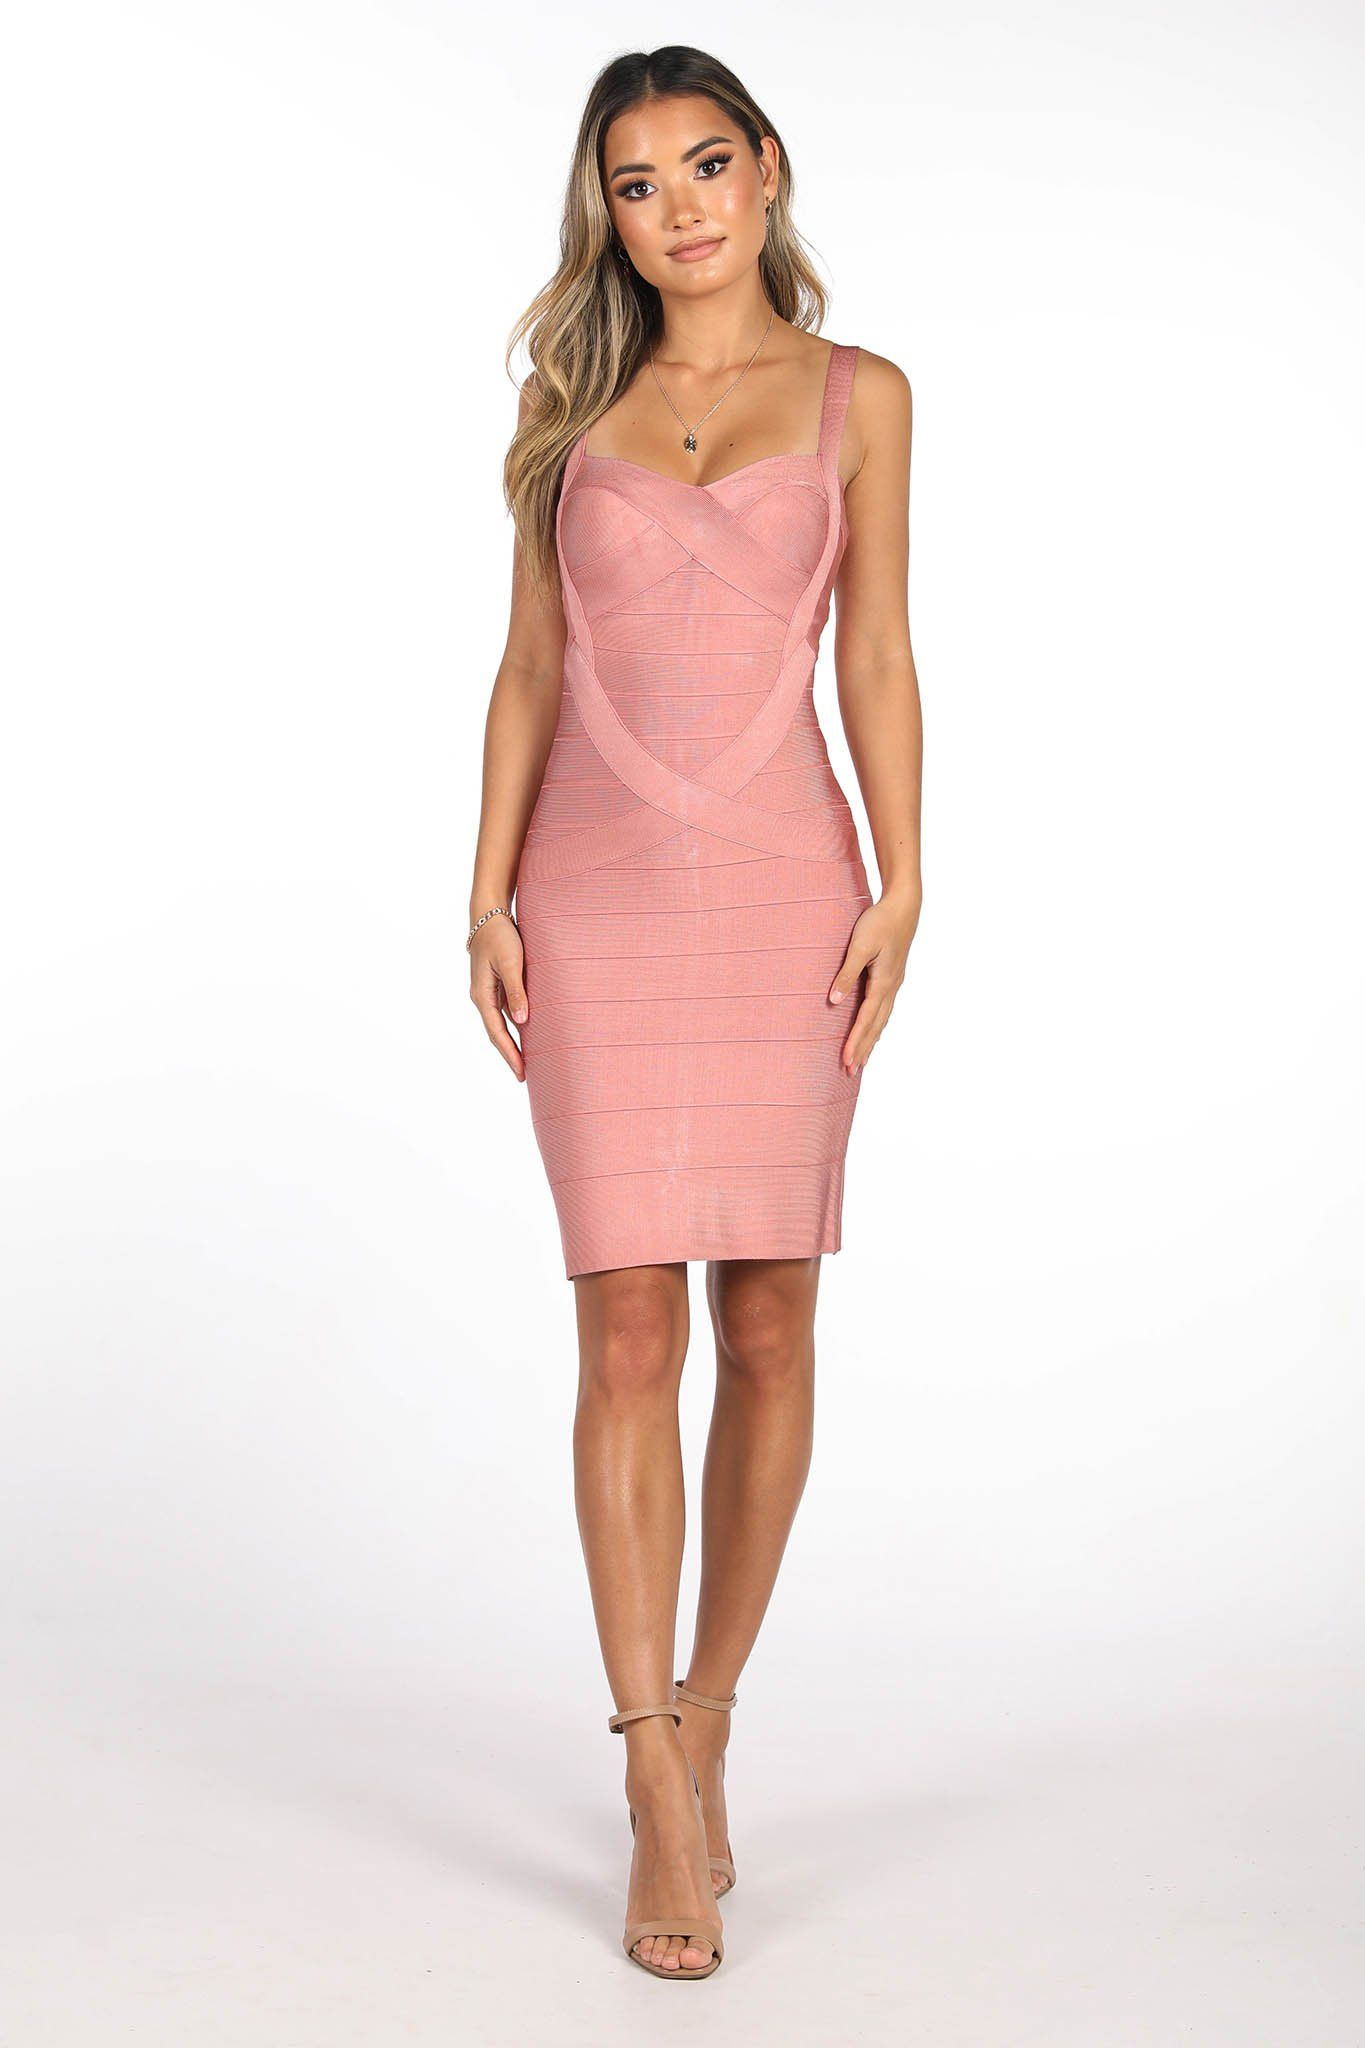 Tea Rose Coloured Mini  Bandage Dress  with Shoulder Straps and Sweetheart Neckline